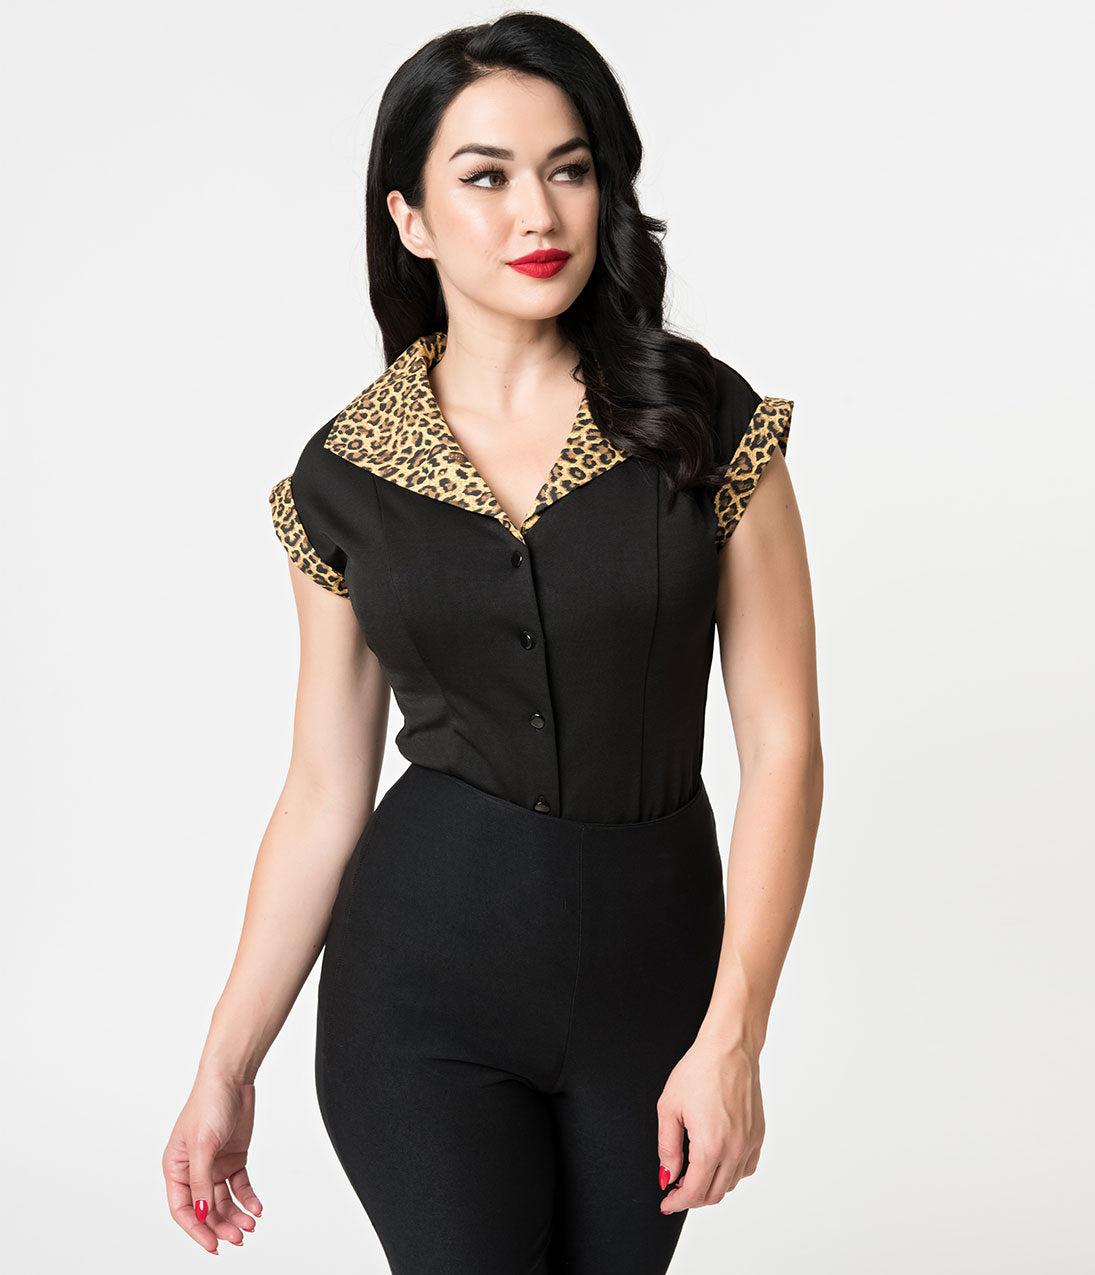 Vintage & Retro Shirts, Halter Tops, Blouses Banned 1950S Style Black  Leopard Button Up Rock  Roll Blouse $48.00 AT vintagedancer.com